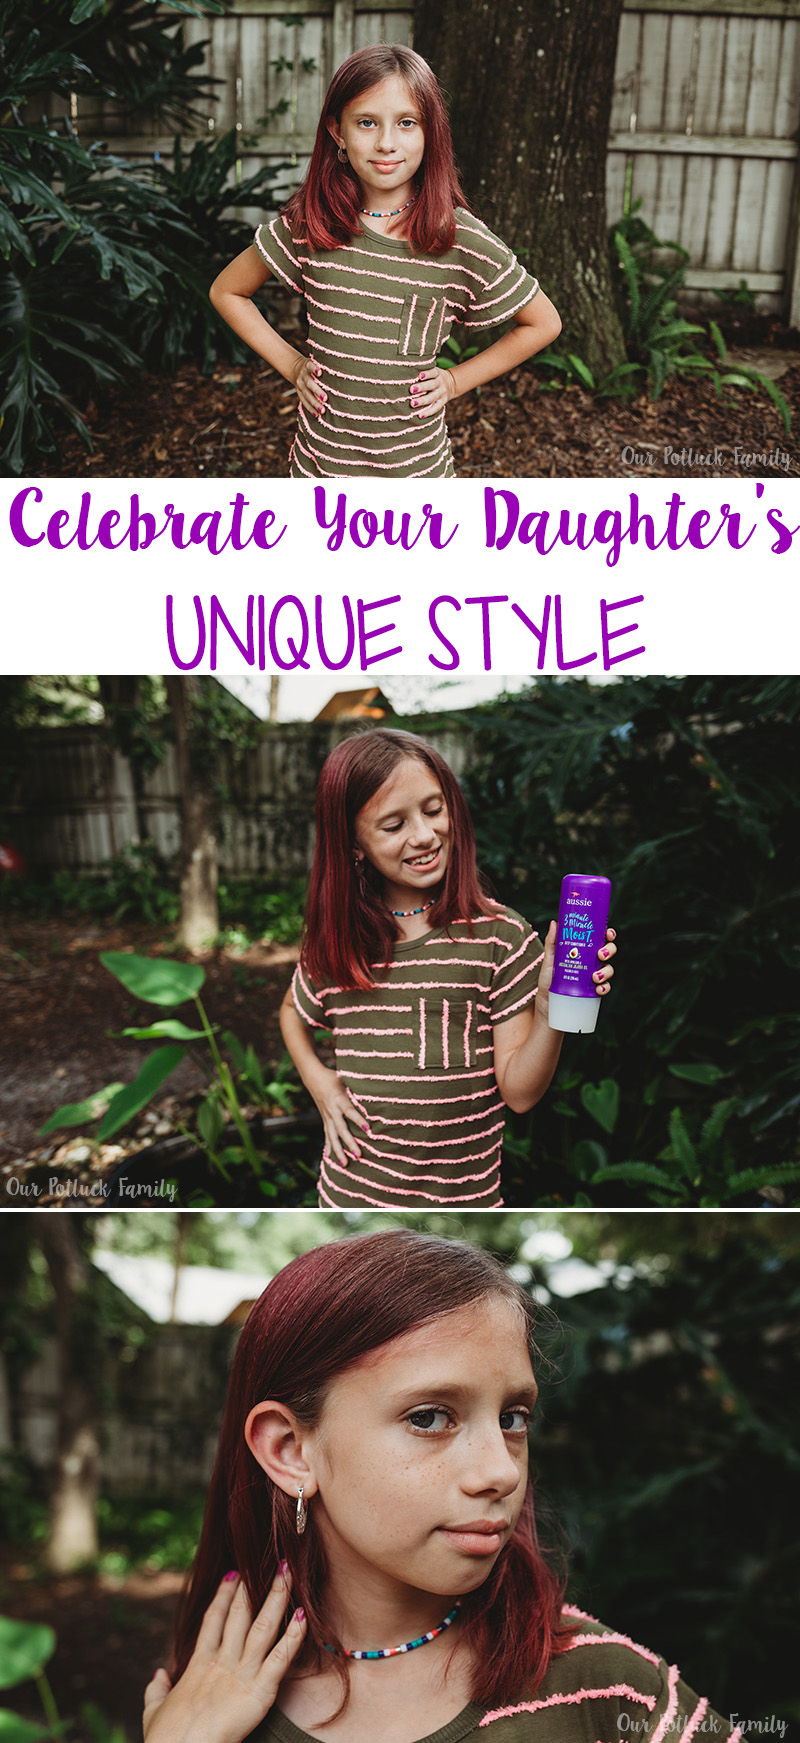 Celebrate Your Daughter's Unique Style